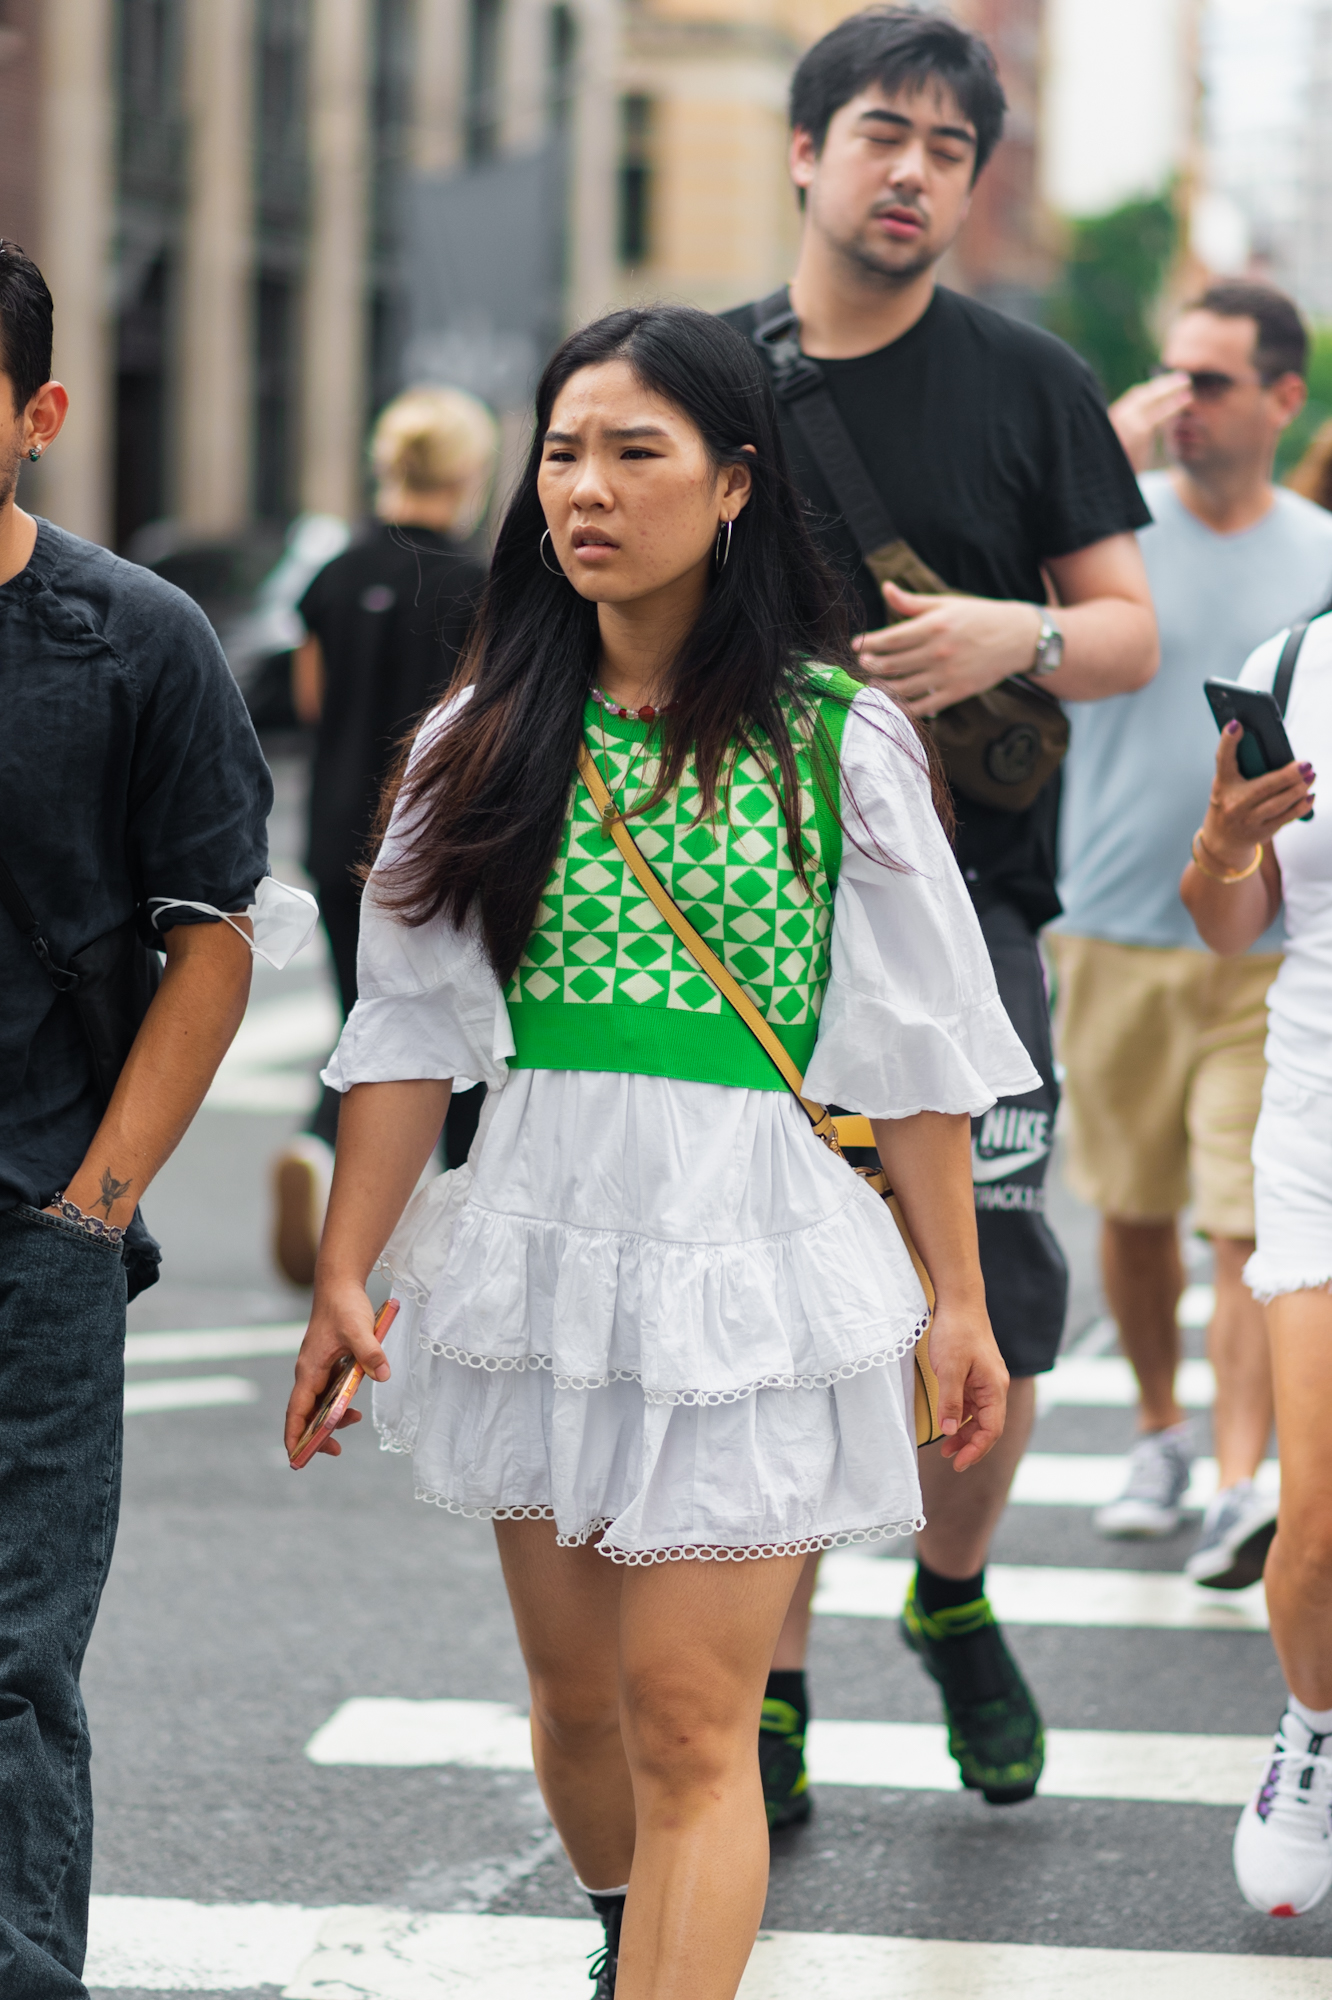 NYC street style fall outfit idea - woman wearing green sweater vest layered over frilled white dress in SoHo - Karya Schanilec NYC fashion photographer